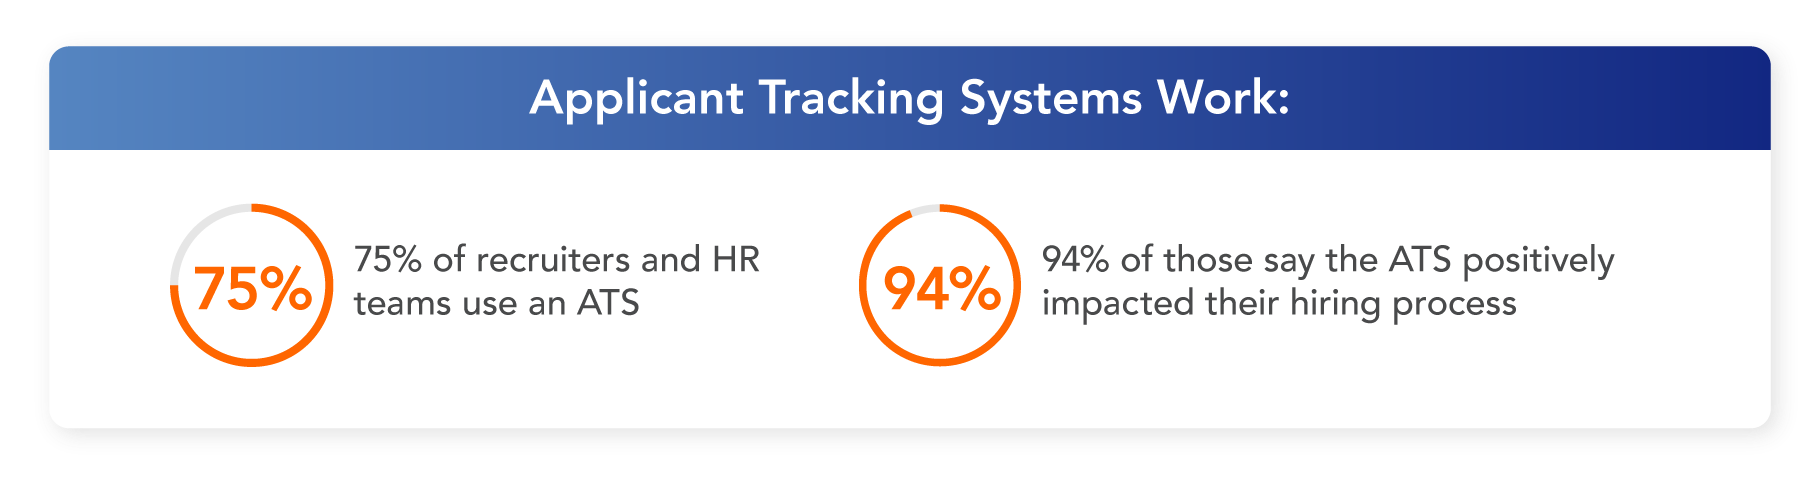 Applicant-Tracking-Systems-Work-IMG